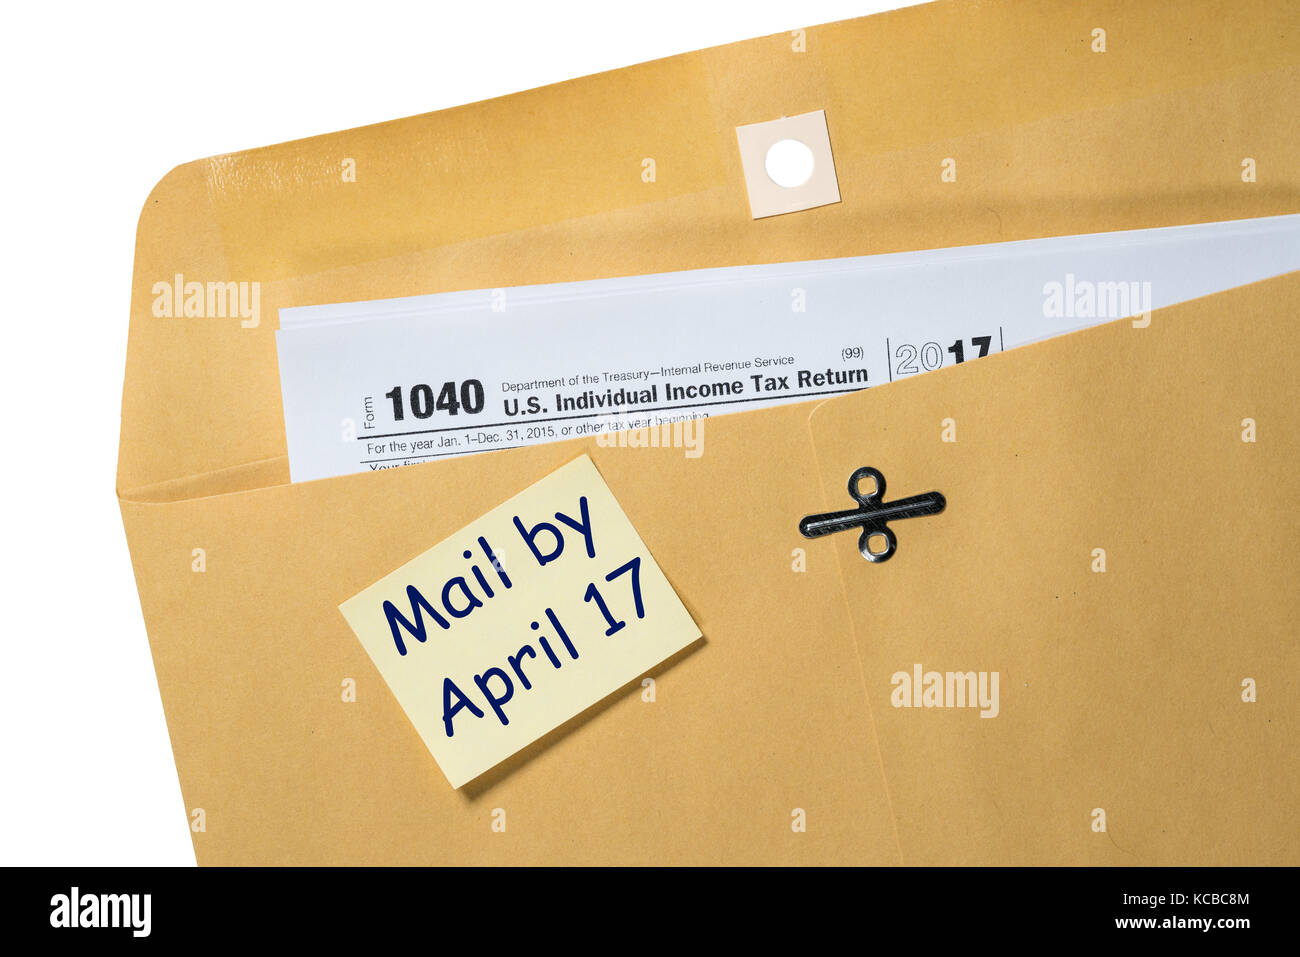 Tax day reminder for april 17 on envelope stock photo royalty tax day reminder for april 17 on envelope sciox Image collections